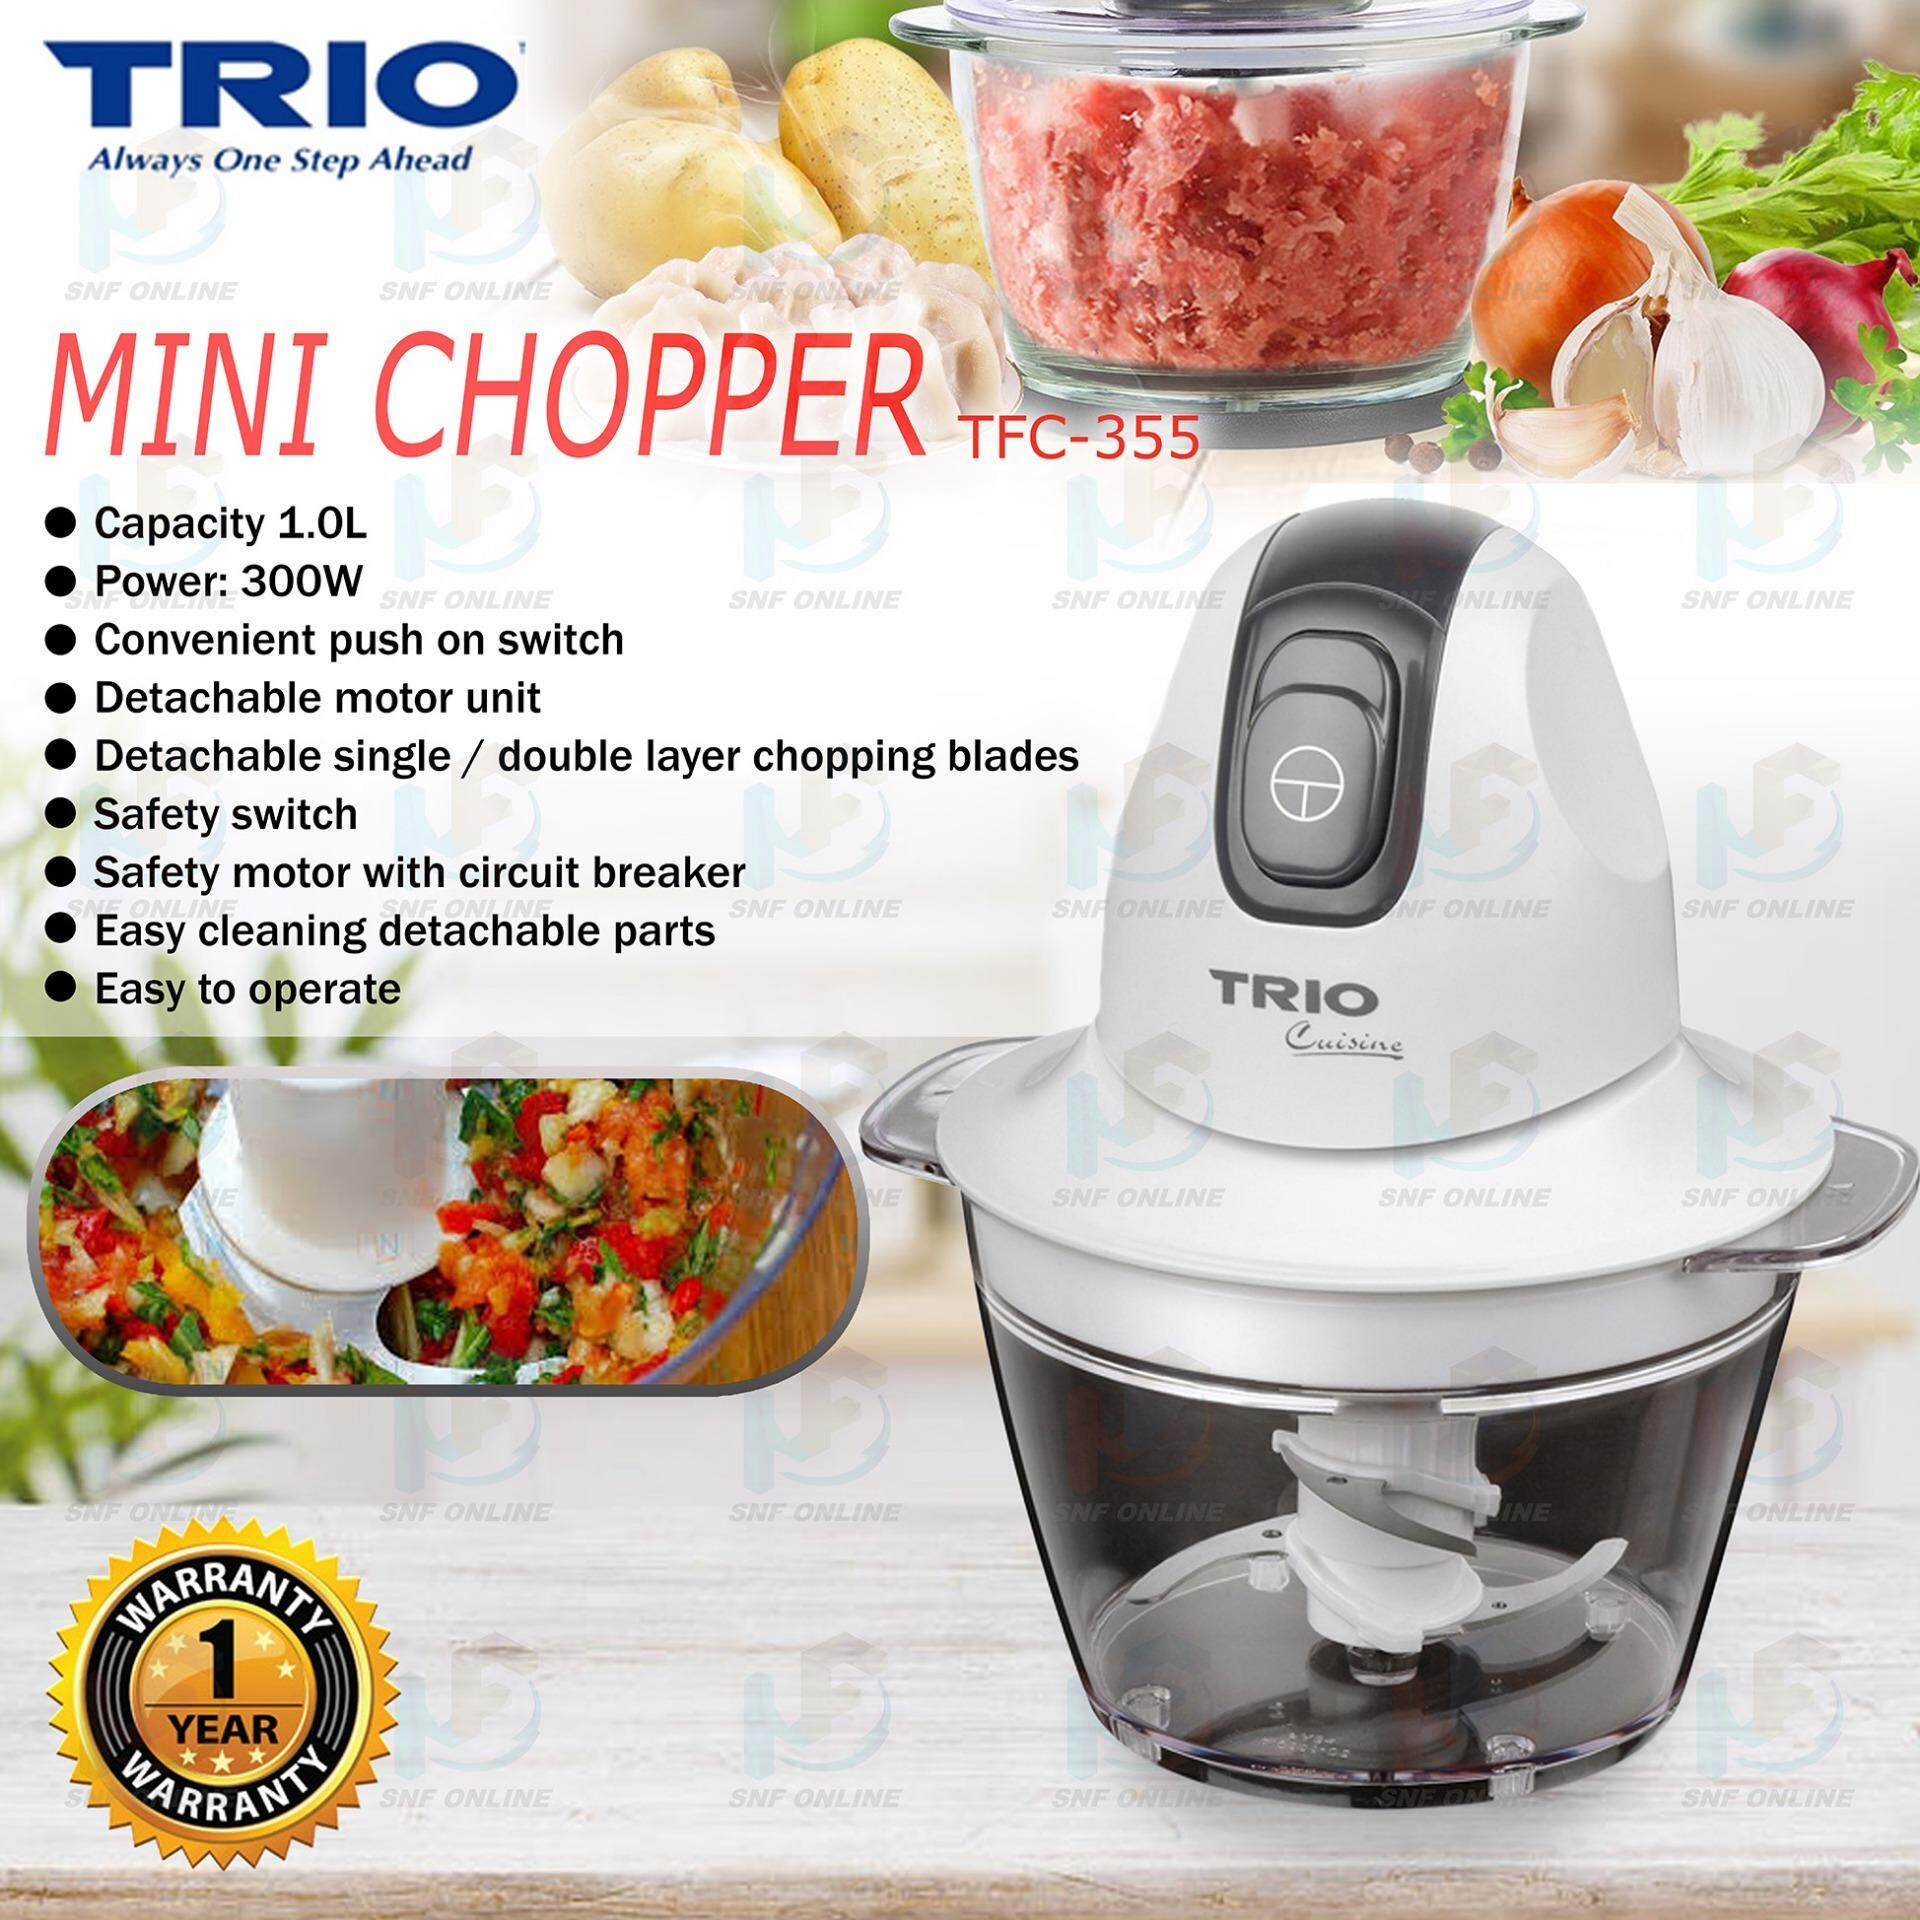 TRIO Mini Chopper TFC-355